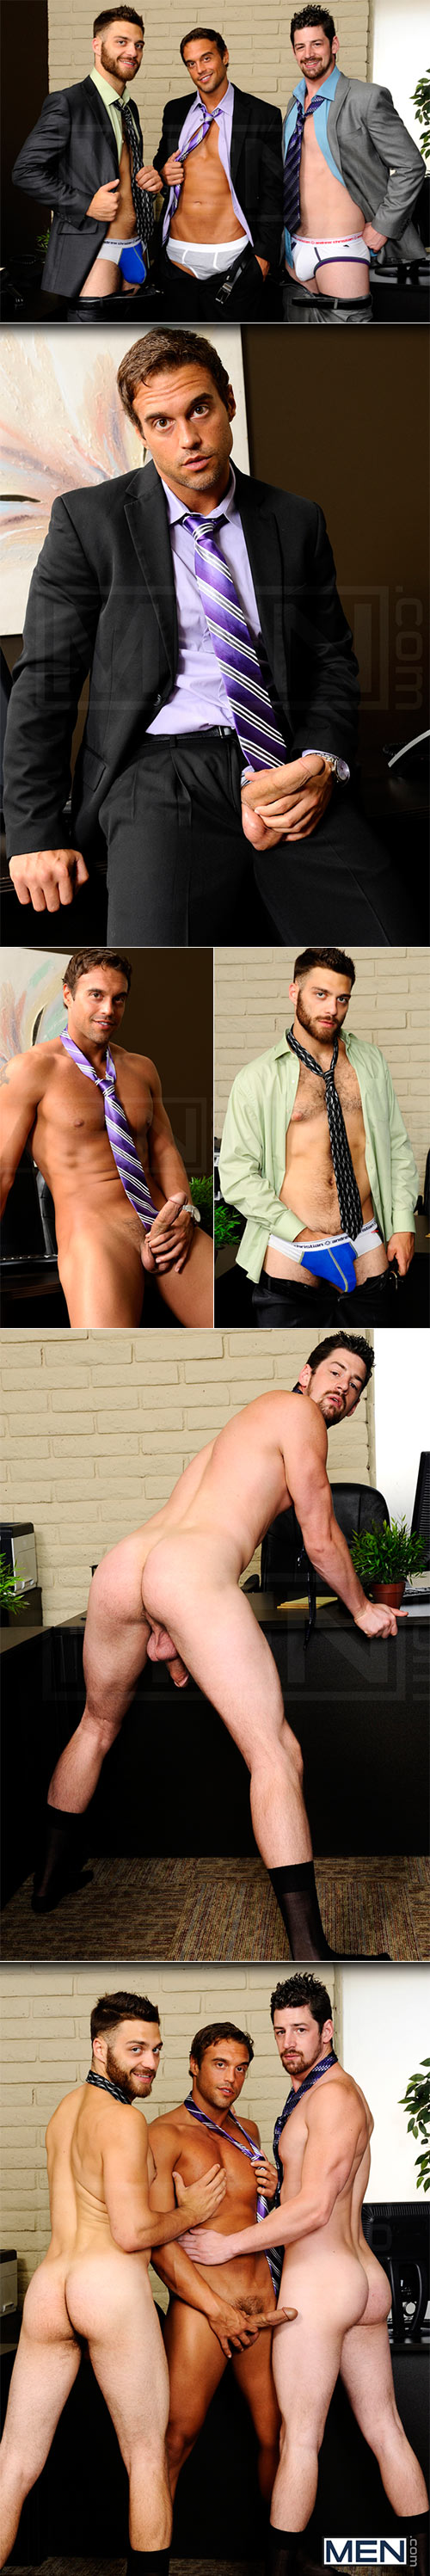 "Men.com: Rocco Reed, Andrew Stark and Tommy Defendi's hot threeway in ""The Promotion"""